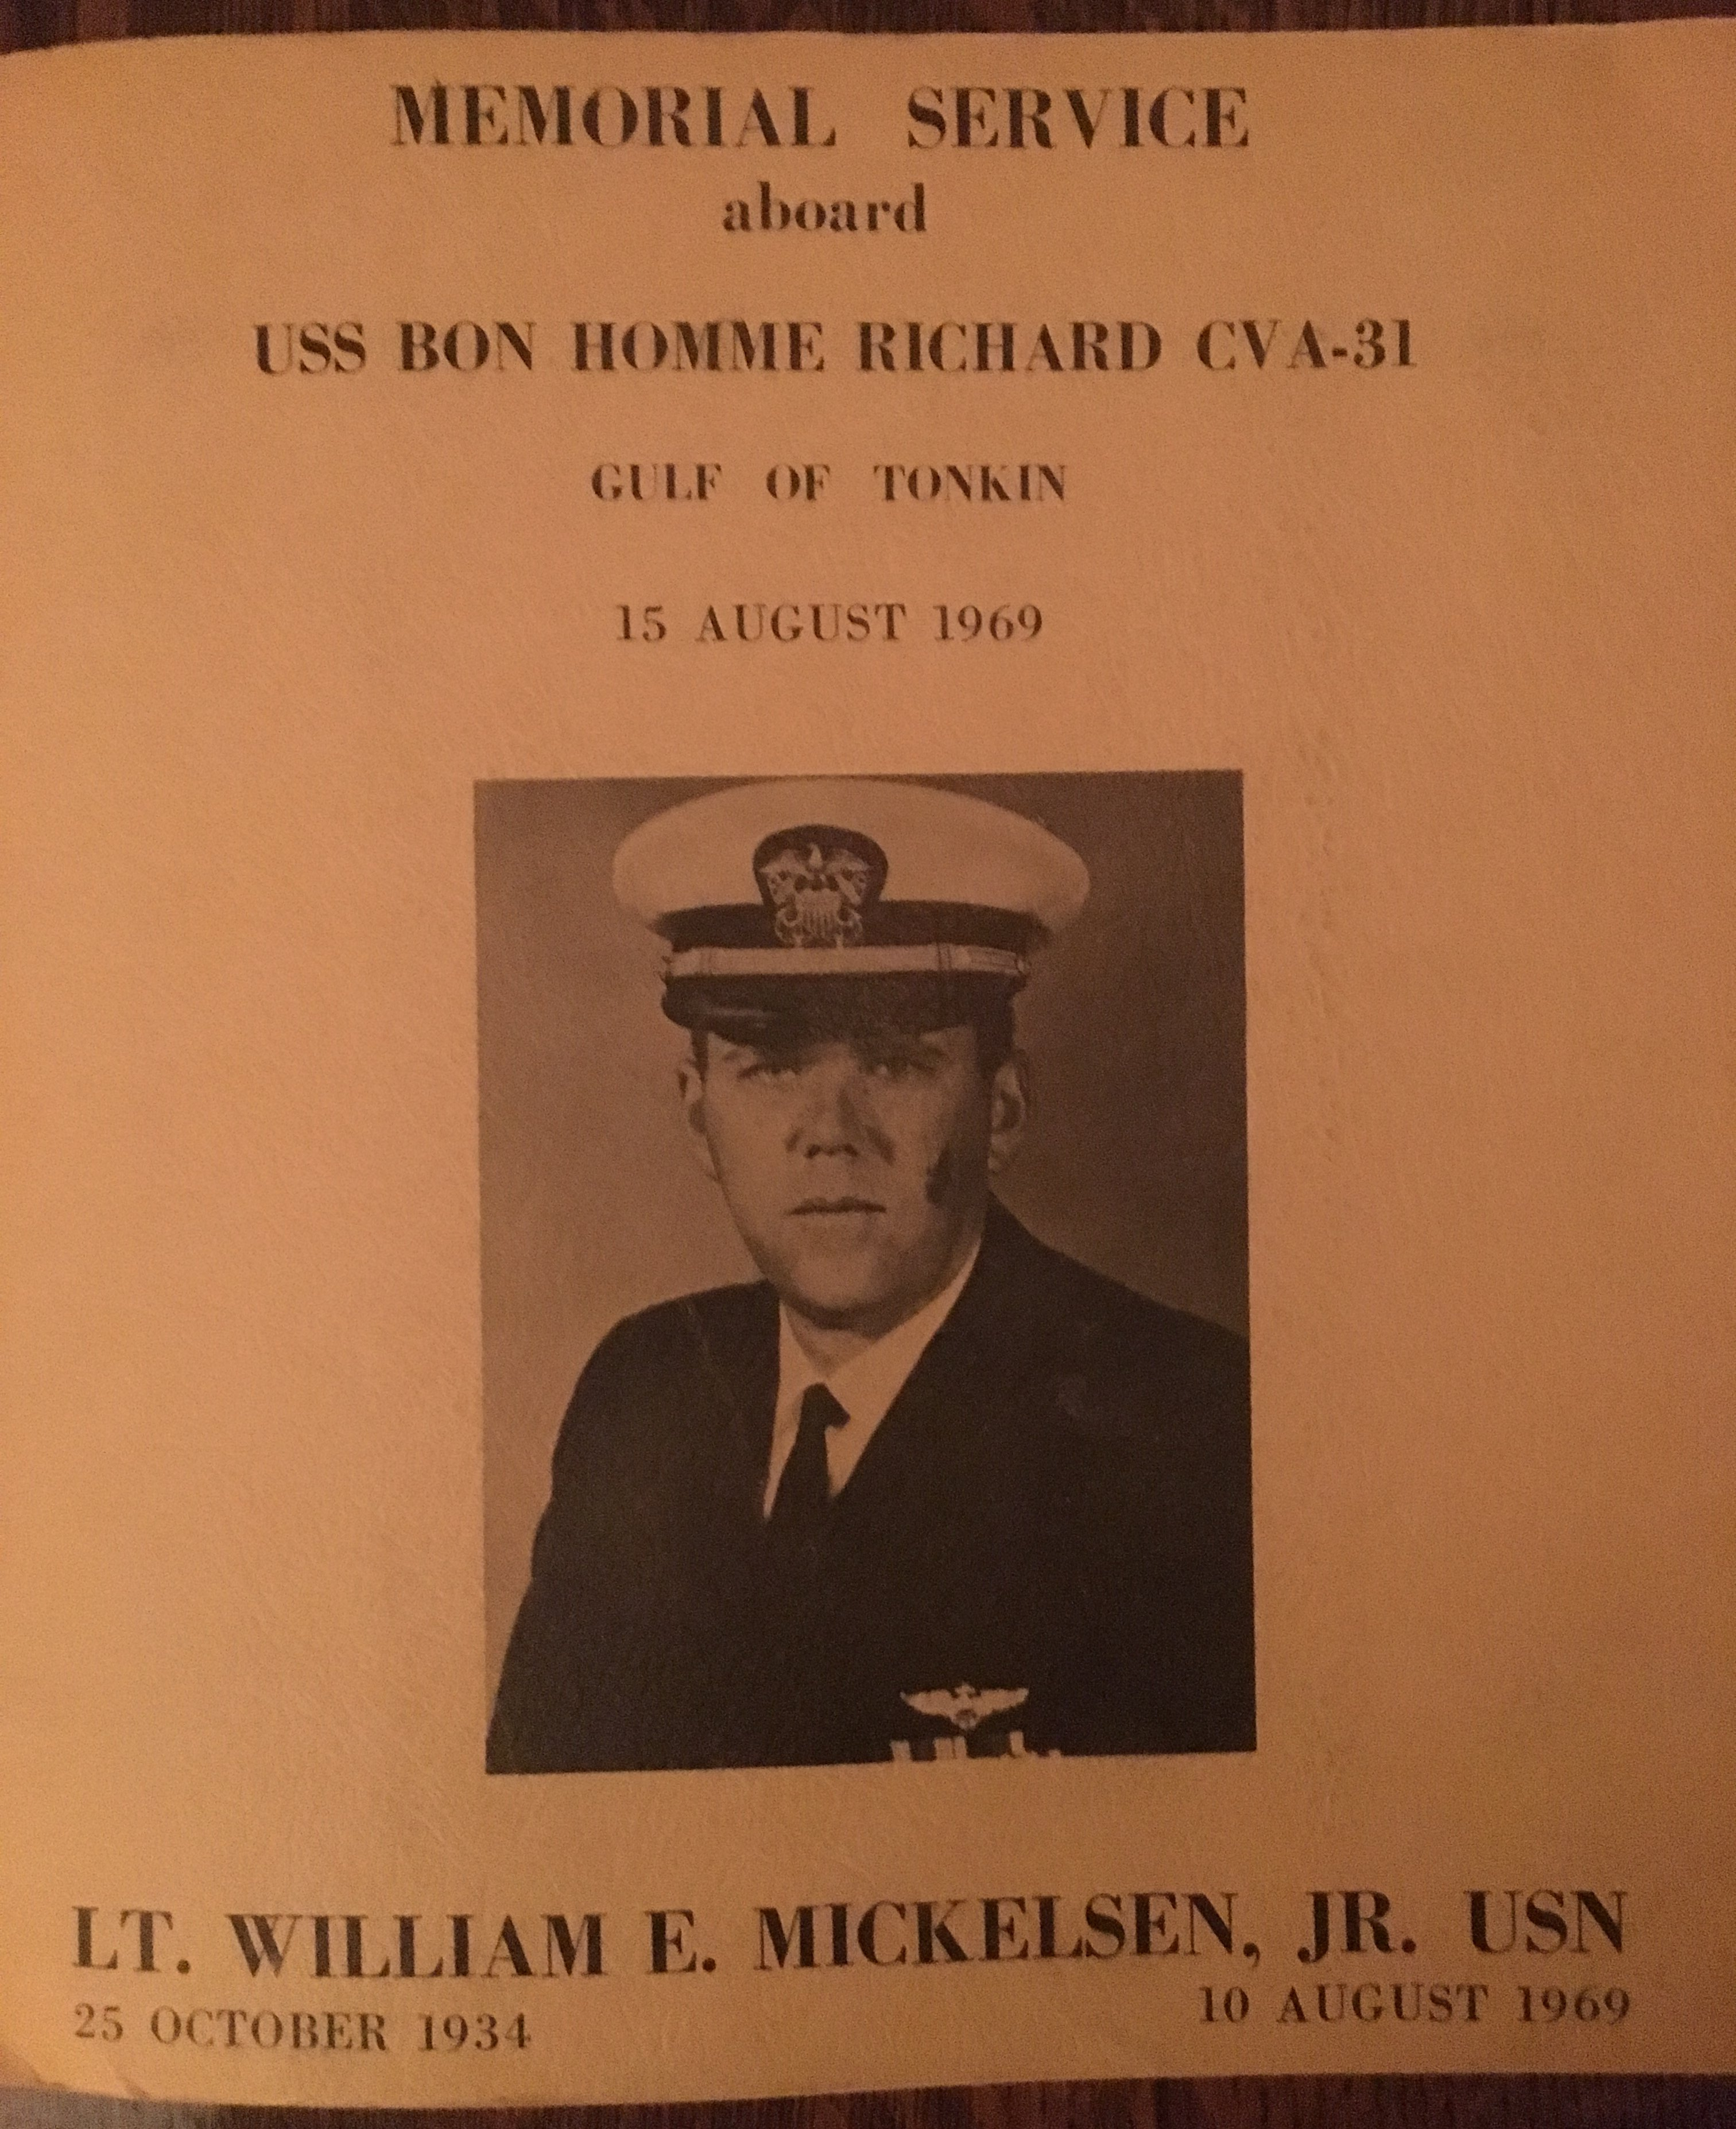 A page from a memorial service program for Lt. William E. Mickelsen, Jr. USN. 25 October 1934 - 10 August 1969.